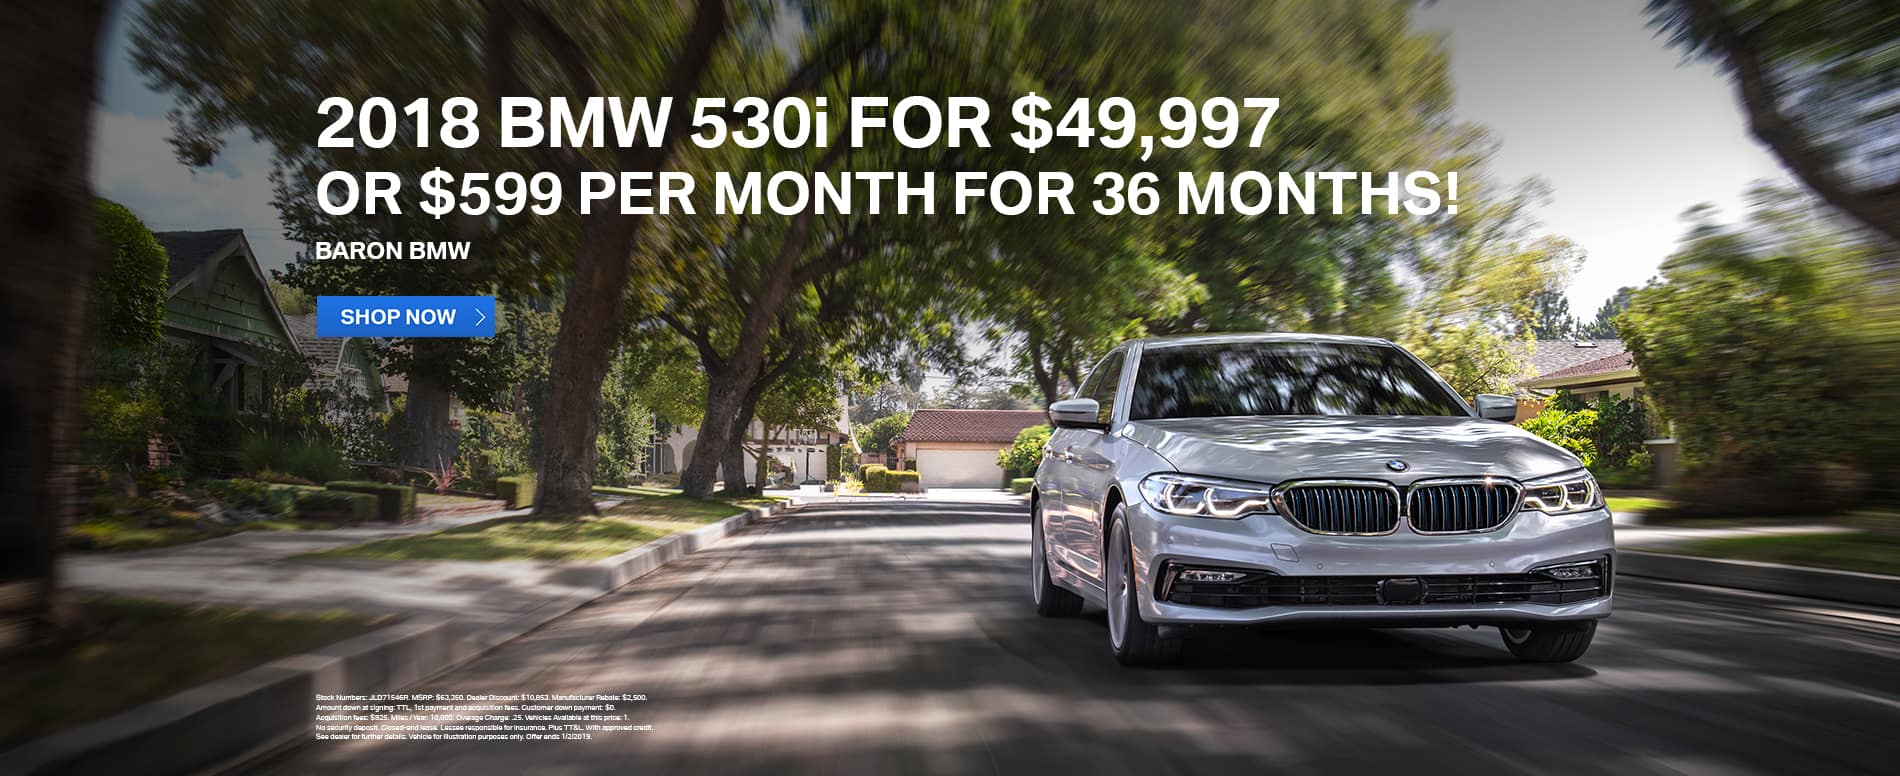 2018-530i-for-2-payment-options